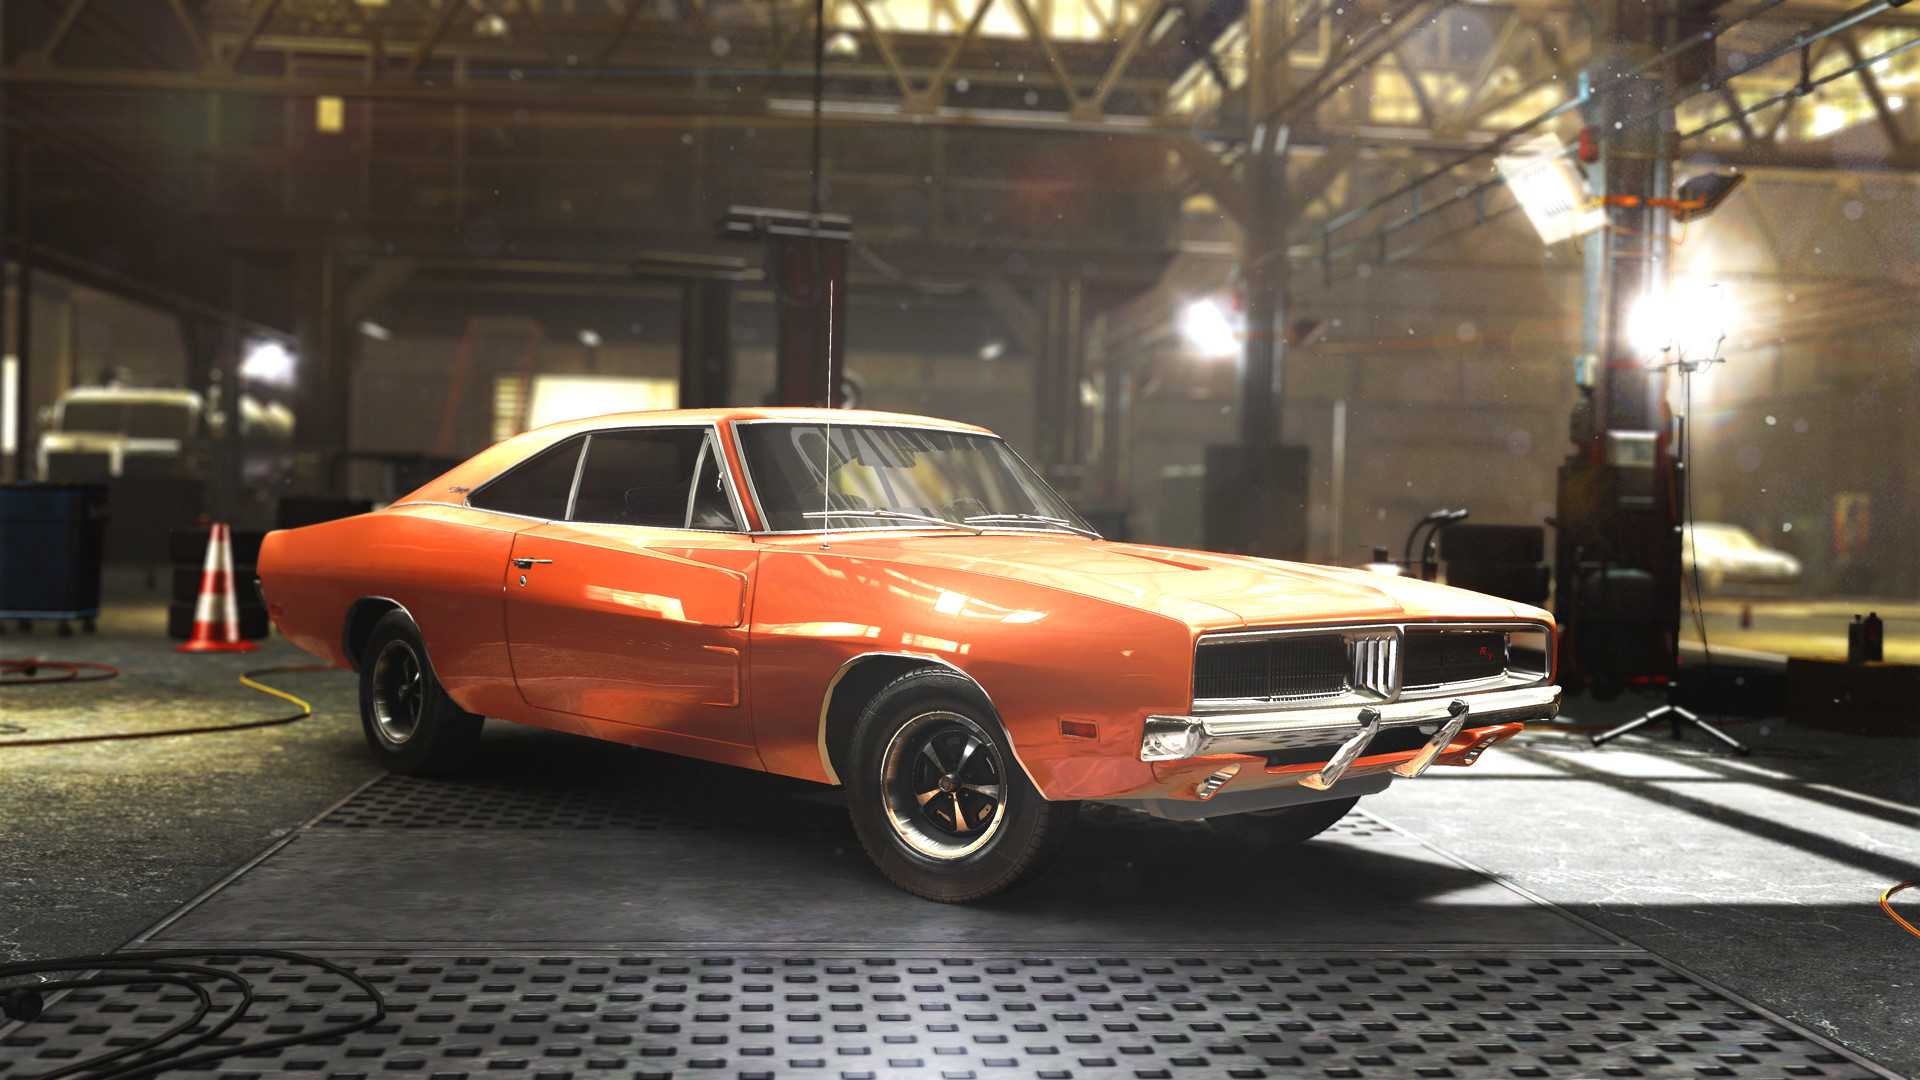 1969 Dodge Charger - 01